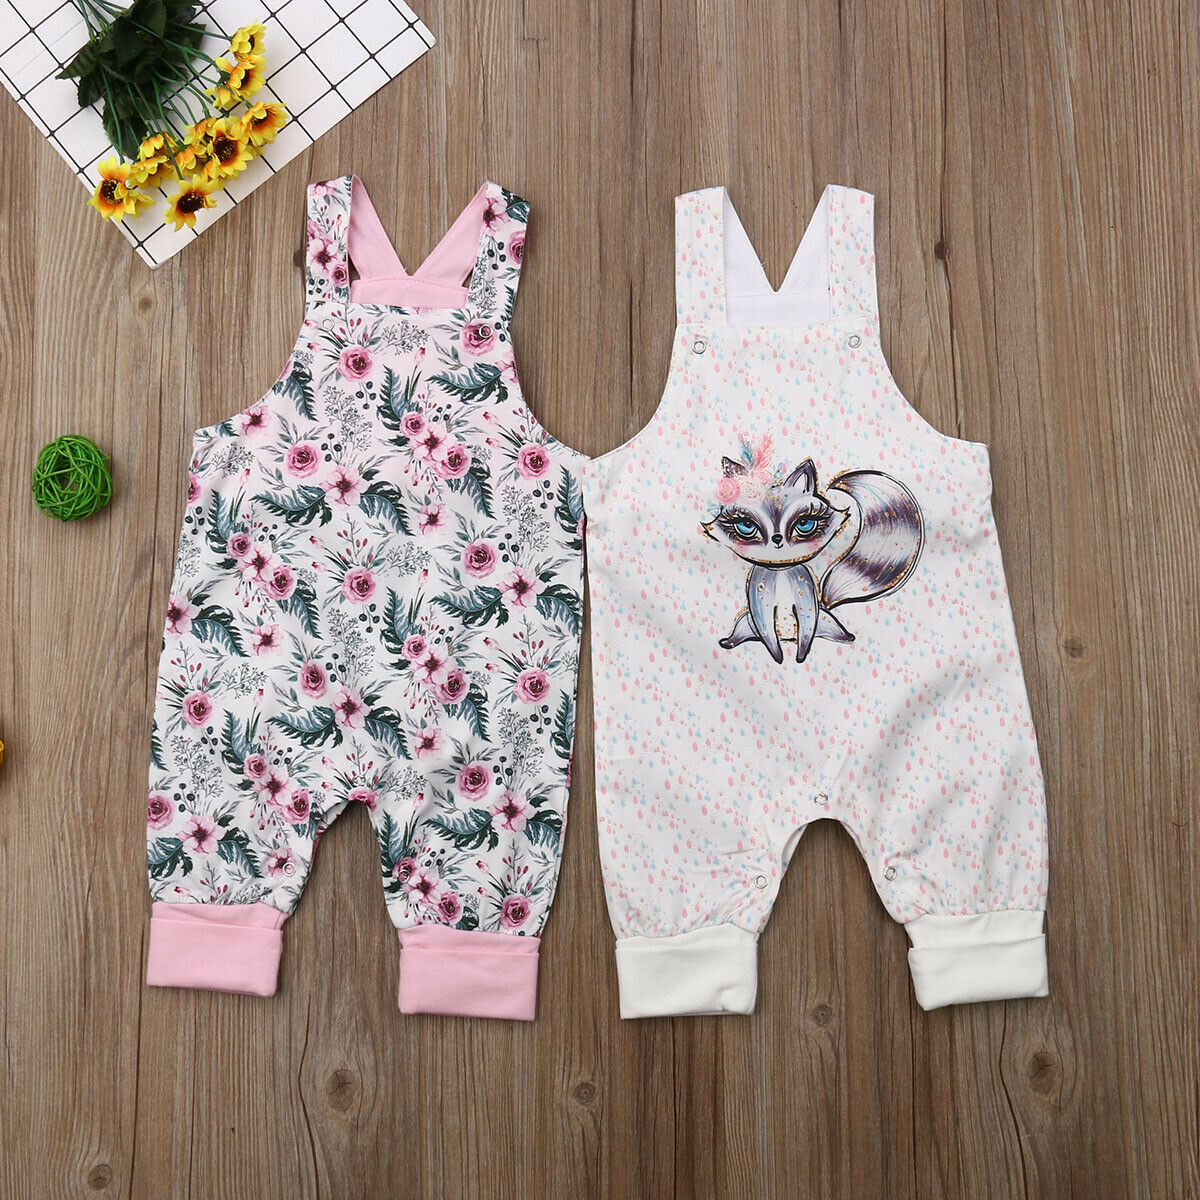 Pudcoco Newest Fashion Newborn Baby Girl   Romper   Sleeveless Flower Fox Print   Romper   Jumpsuit One-Piece Outfit Playsuit Clothes